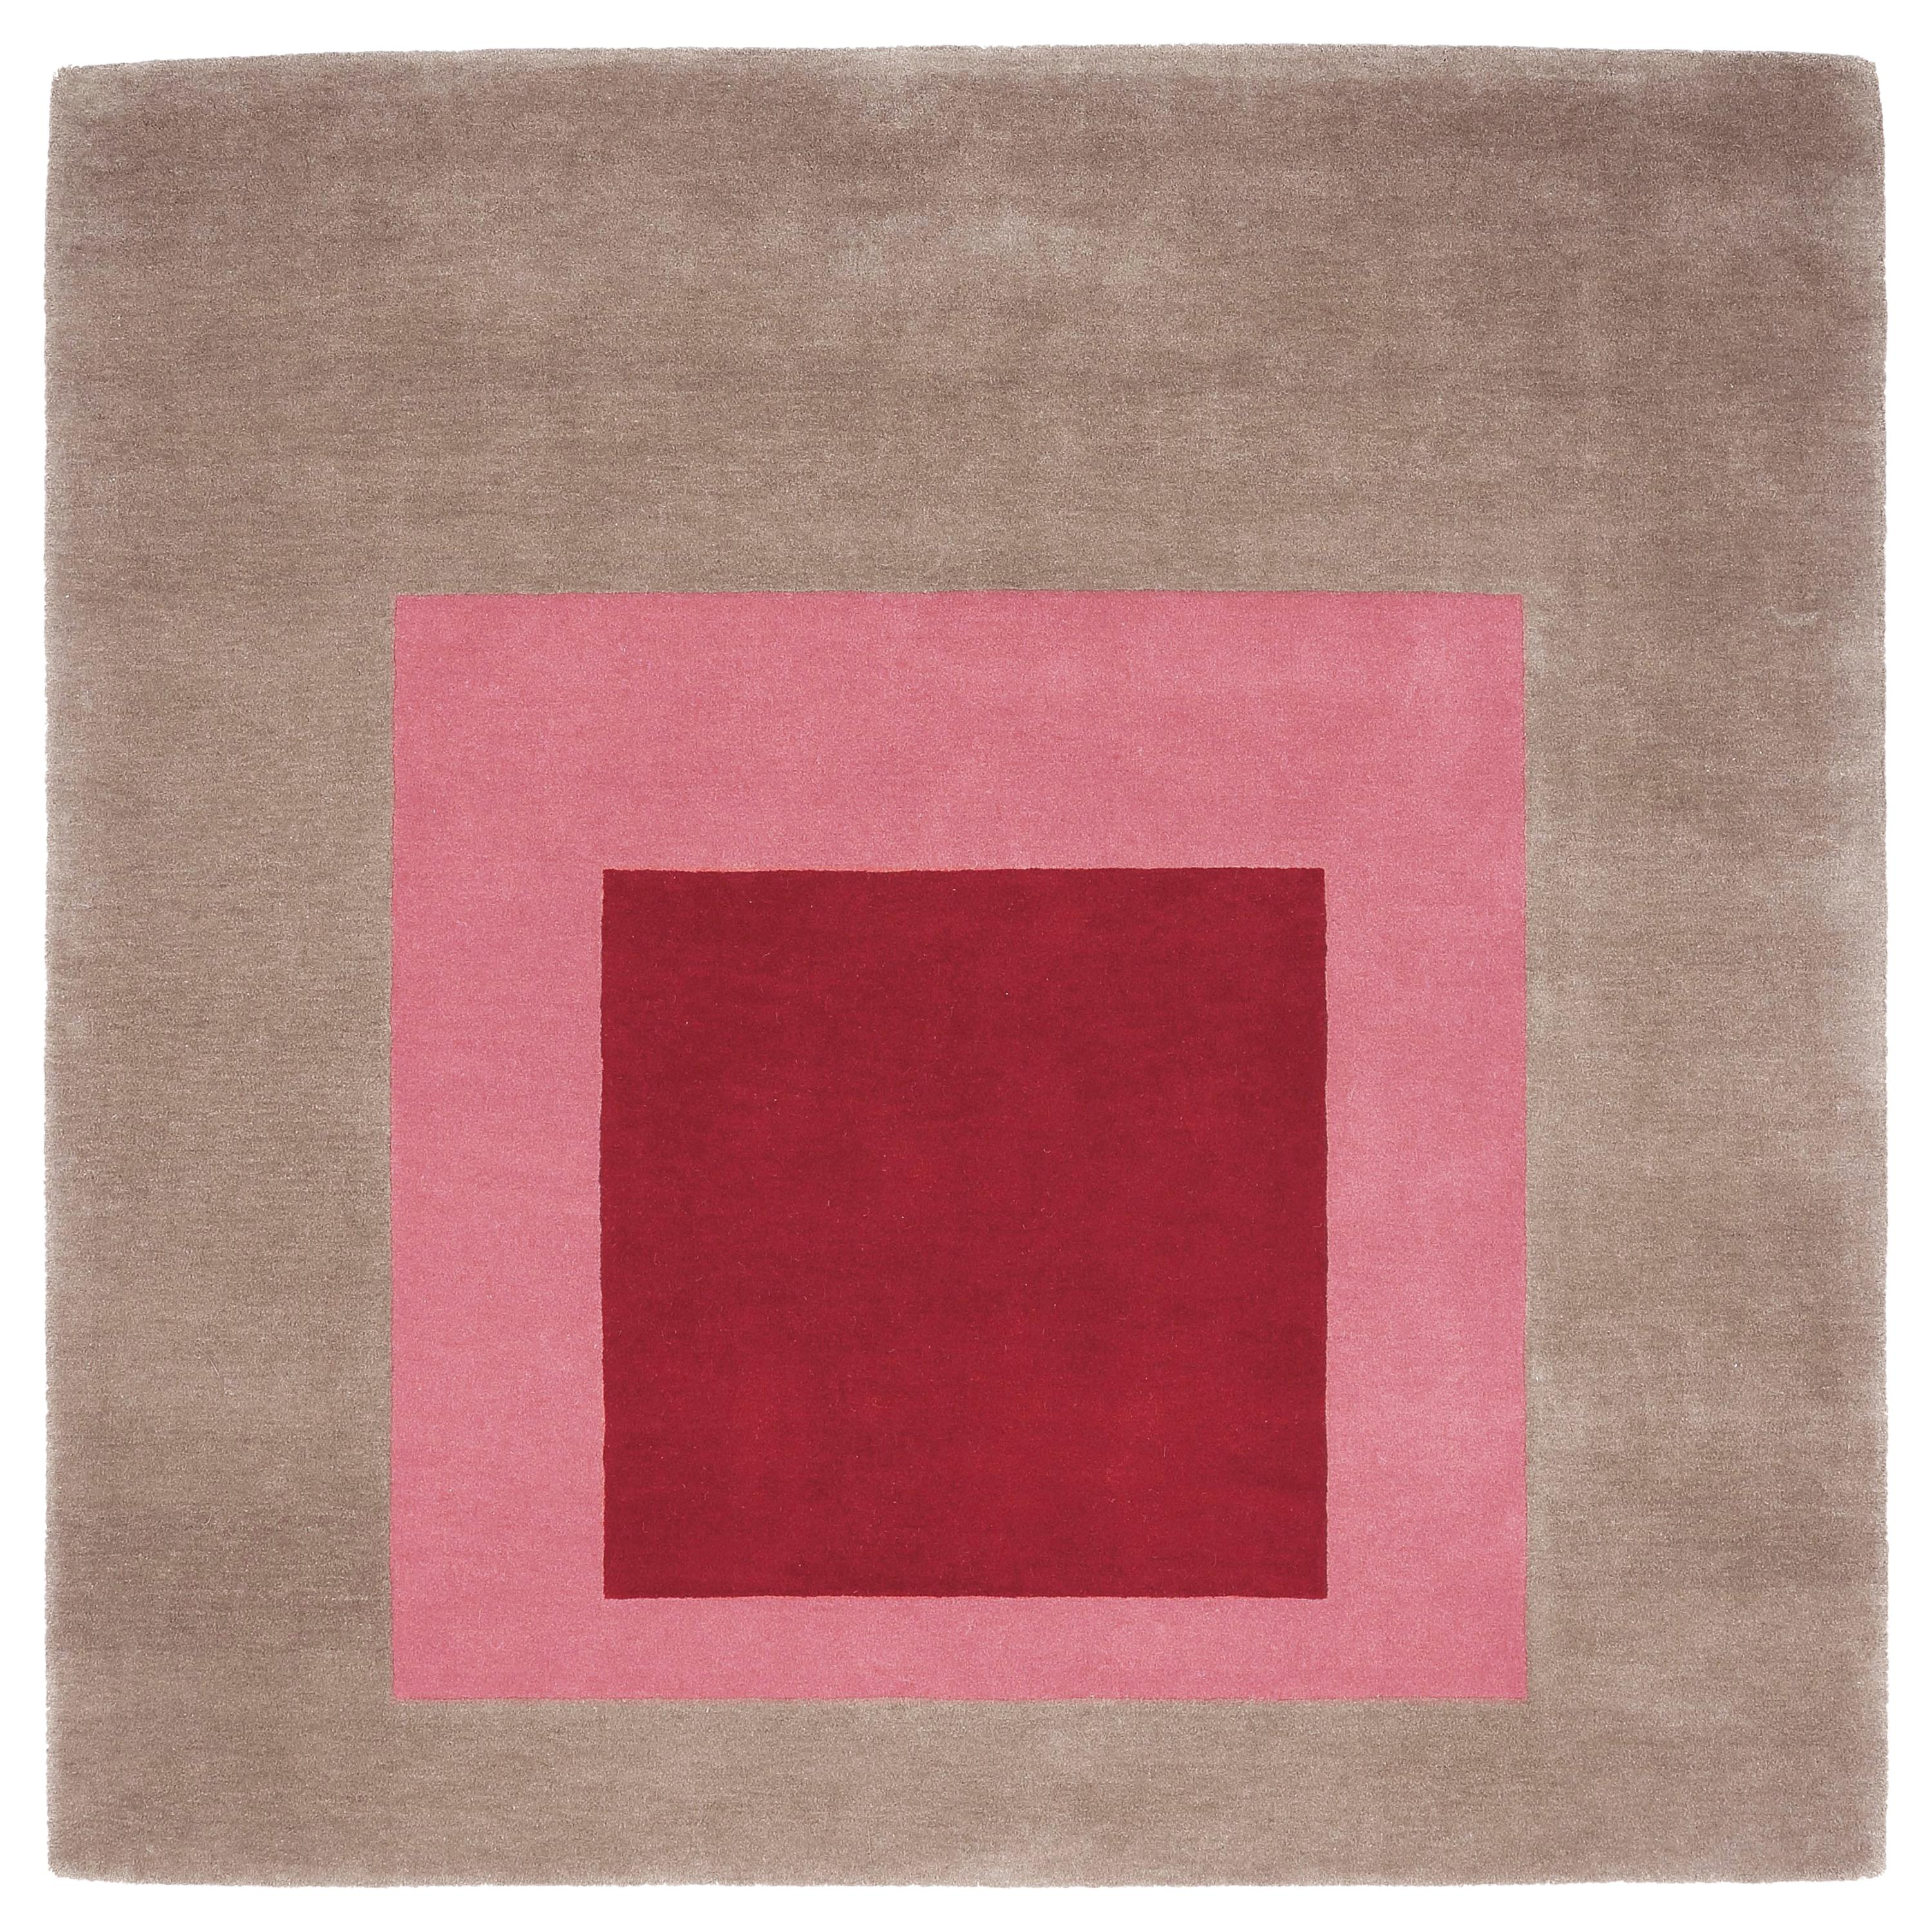 Homage to the Square Rug 'Beige/Pink/Burgundy' by Josef Albers